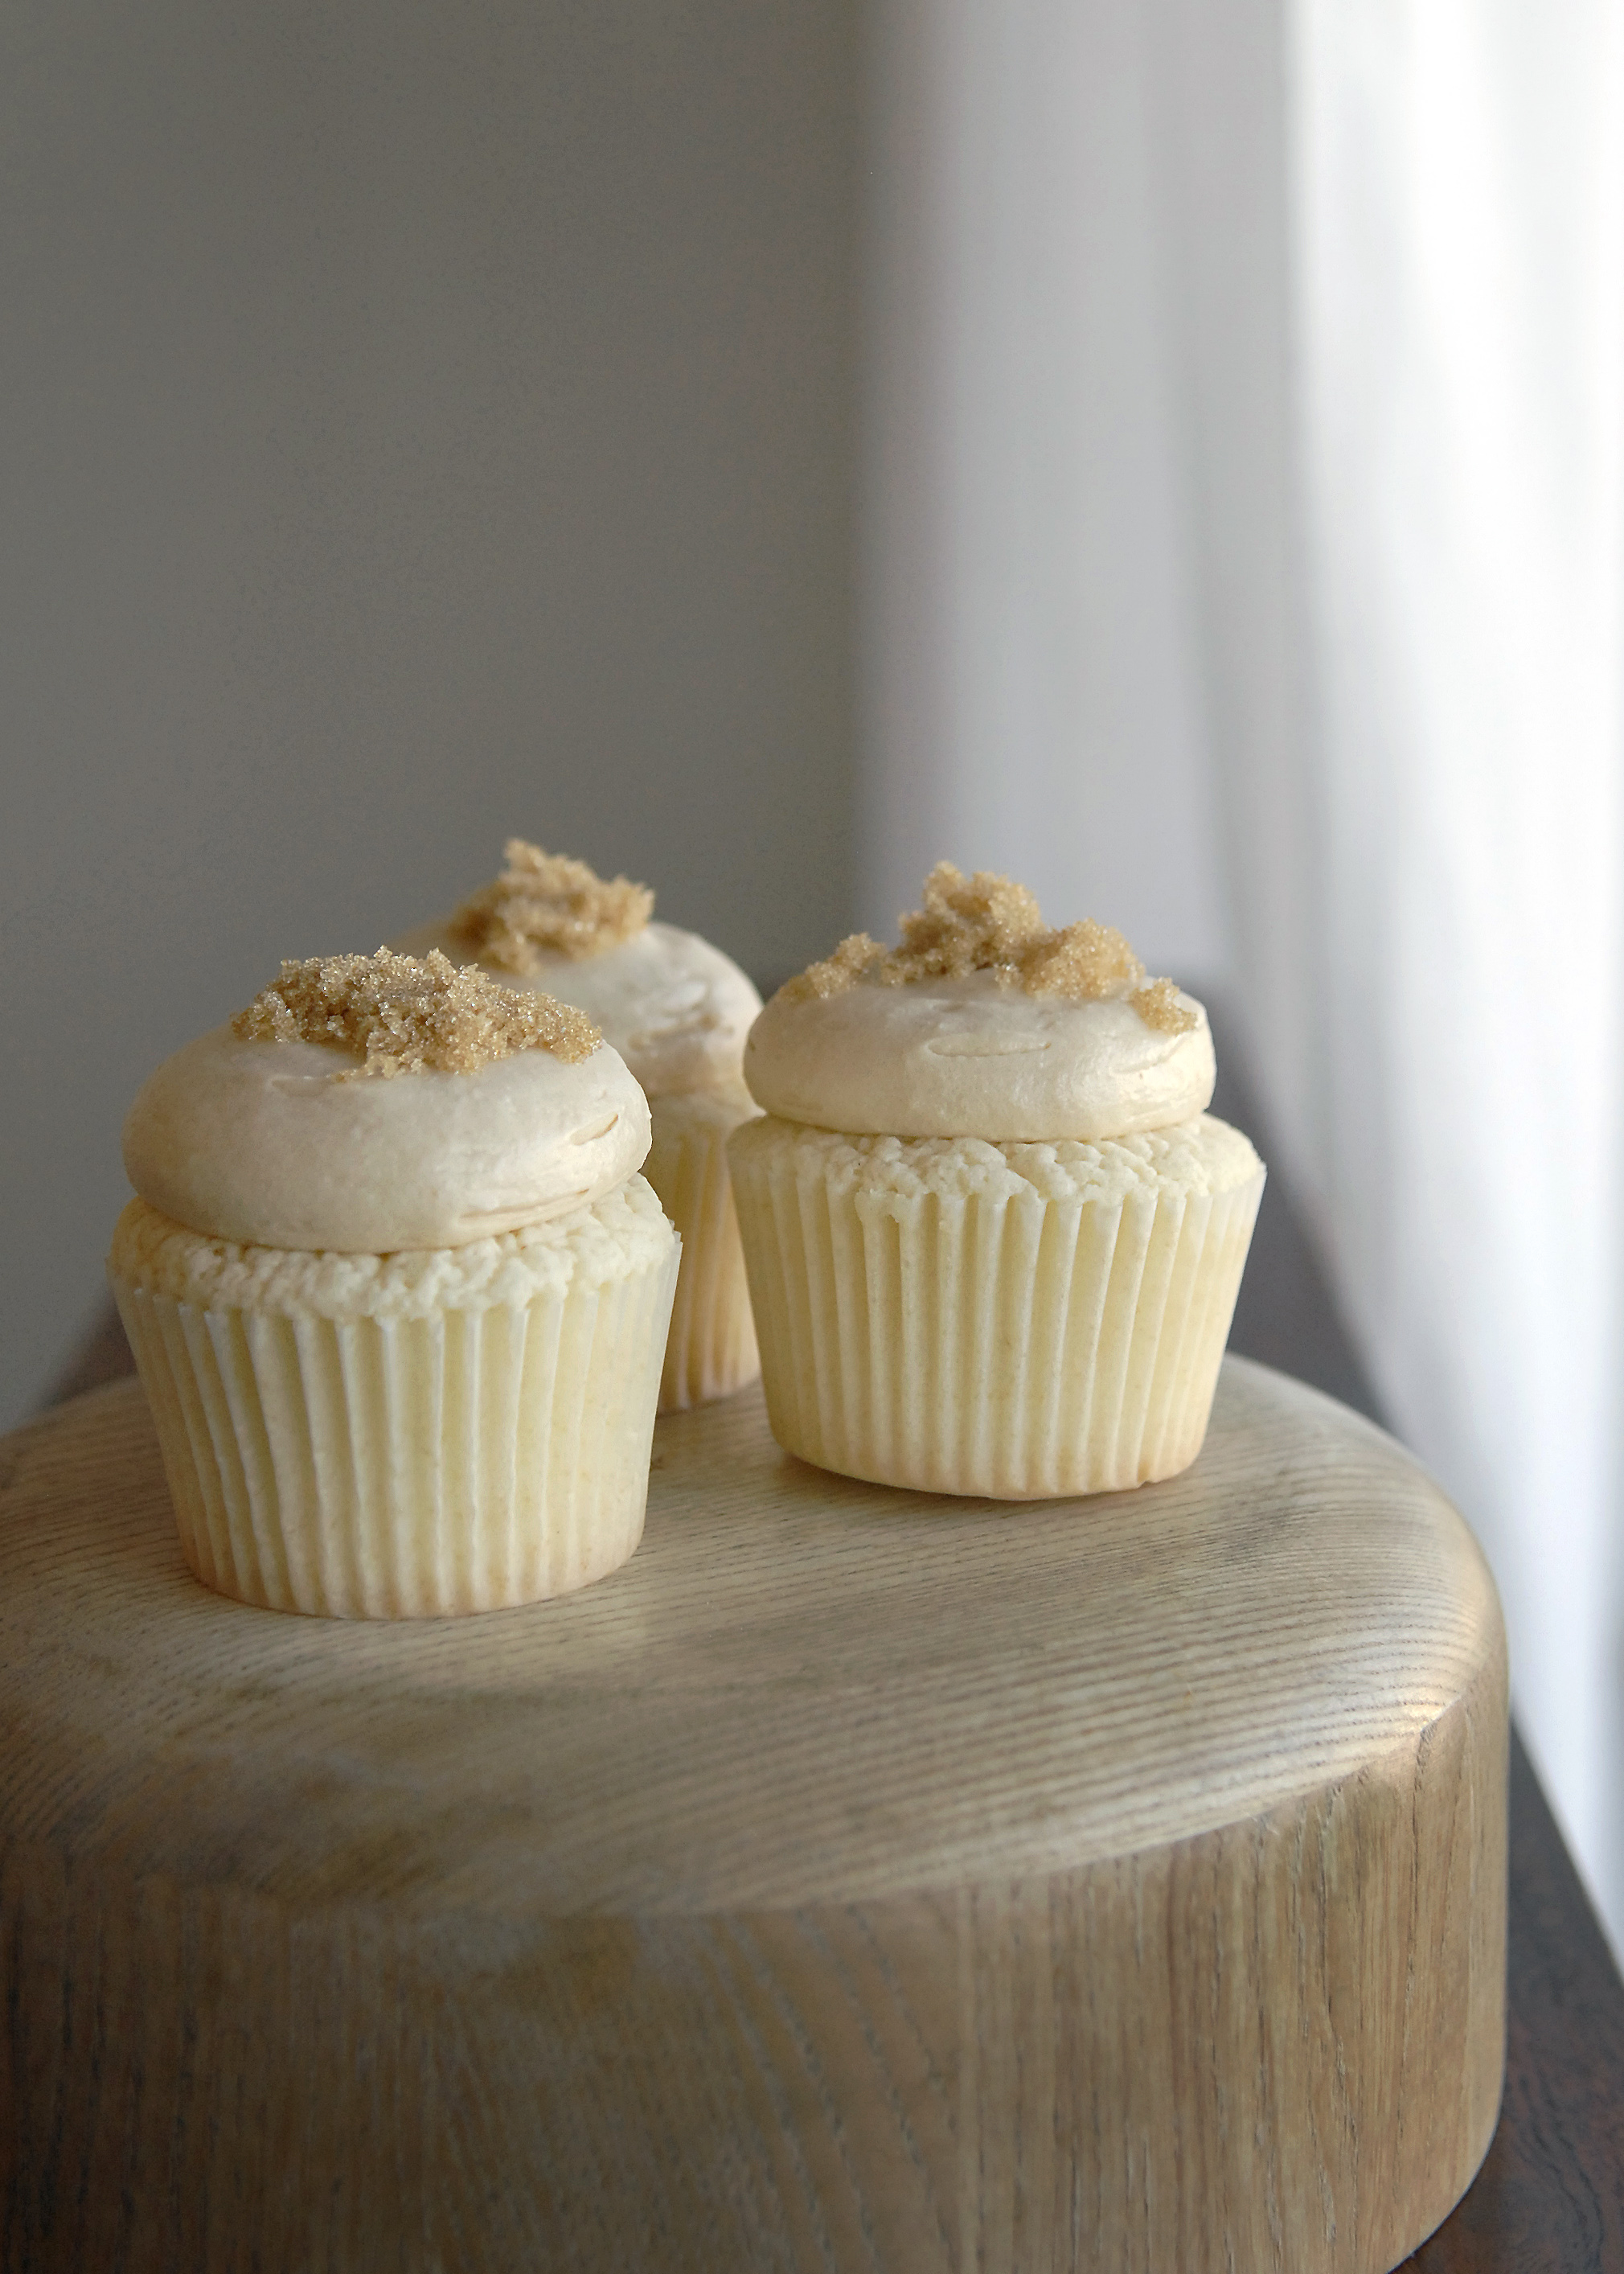 Brown Sugar Caramel Cupcake   2.95 each  A fall favorite! Cooked caramel frosting atop tender little cupcakes with just a pinch of brown sugar on top!   (Available September through January)